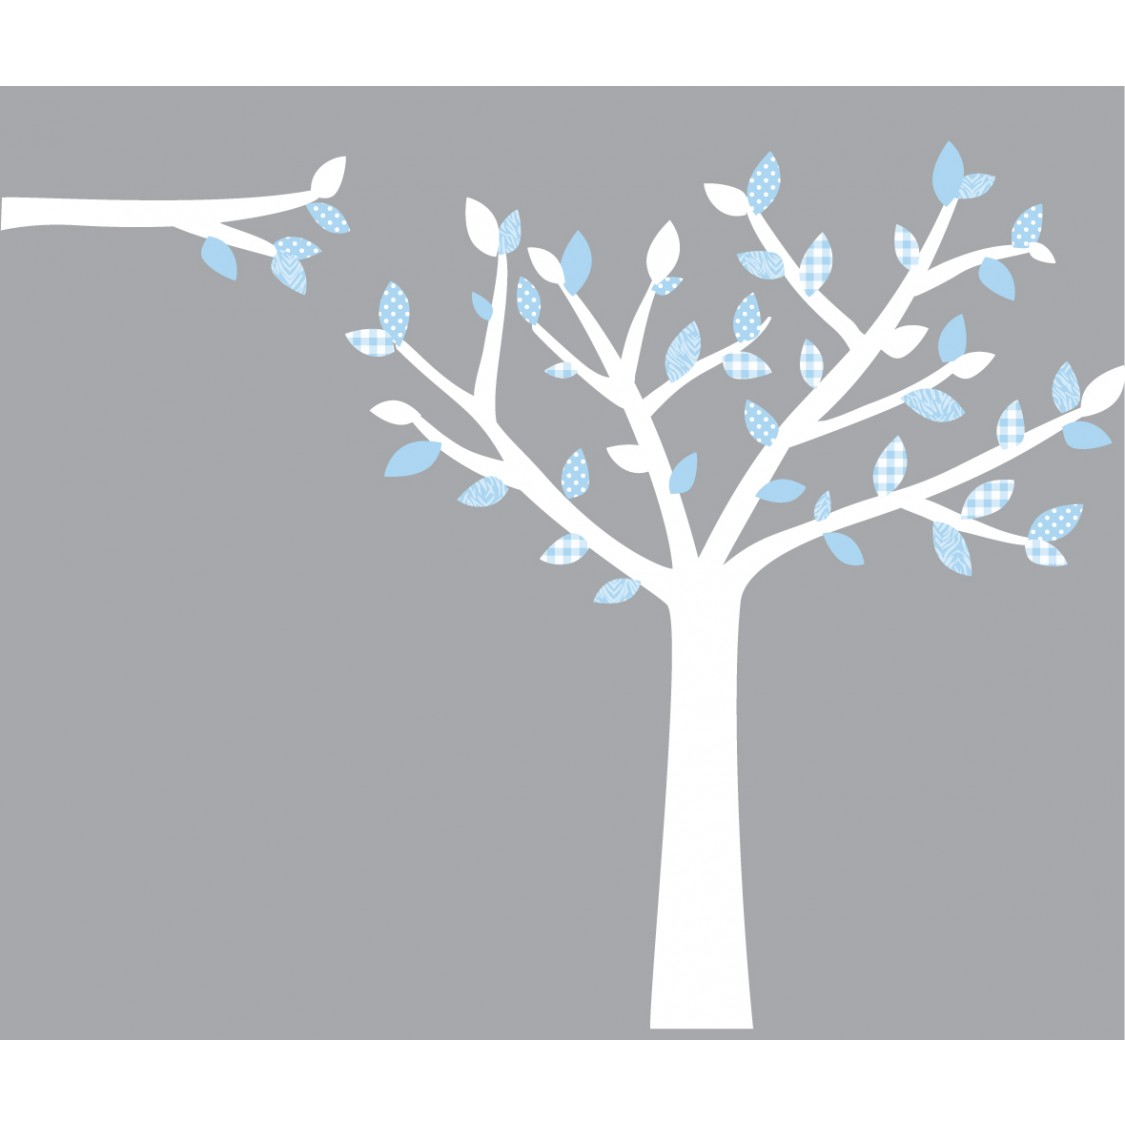 Tree Wall Murals and Tree Decals can turn a Blank Wall into Art